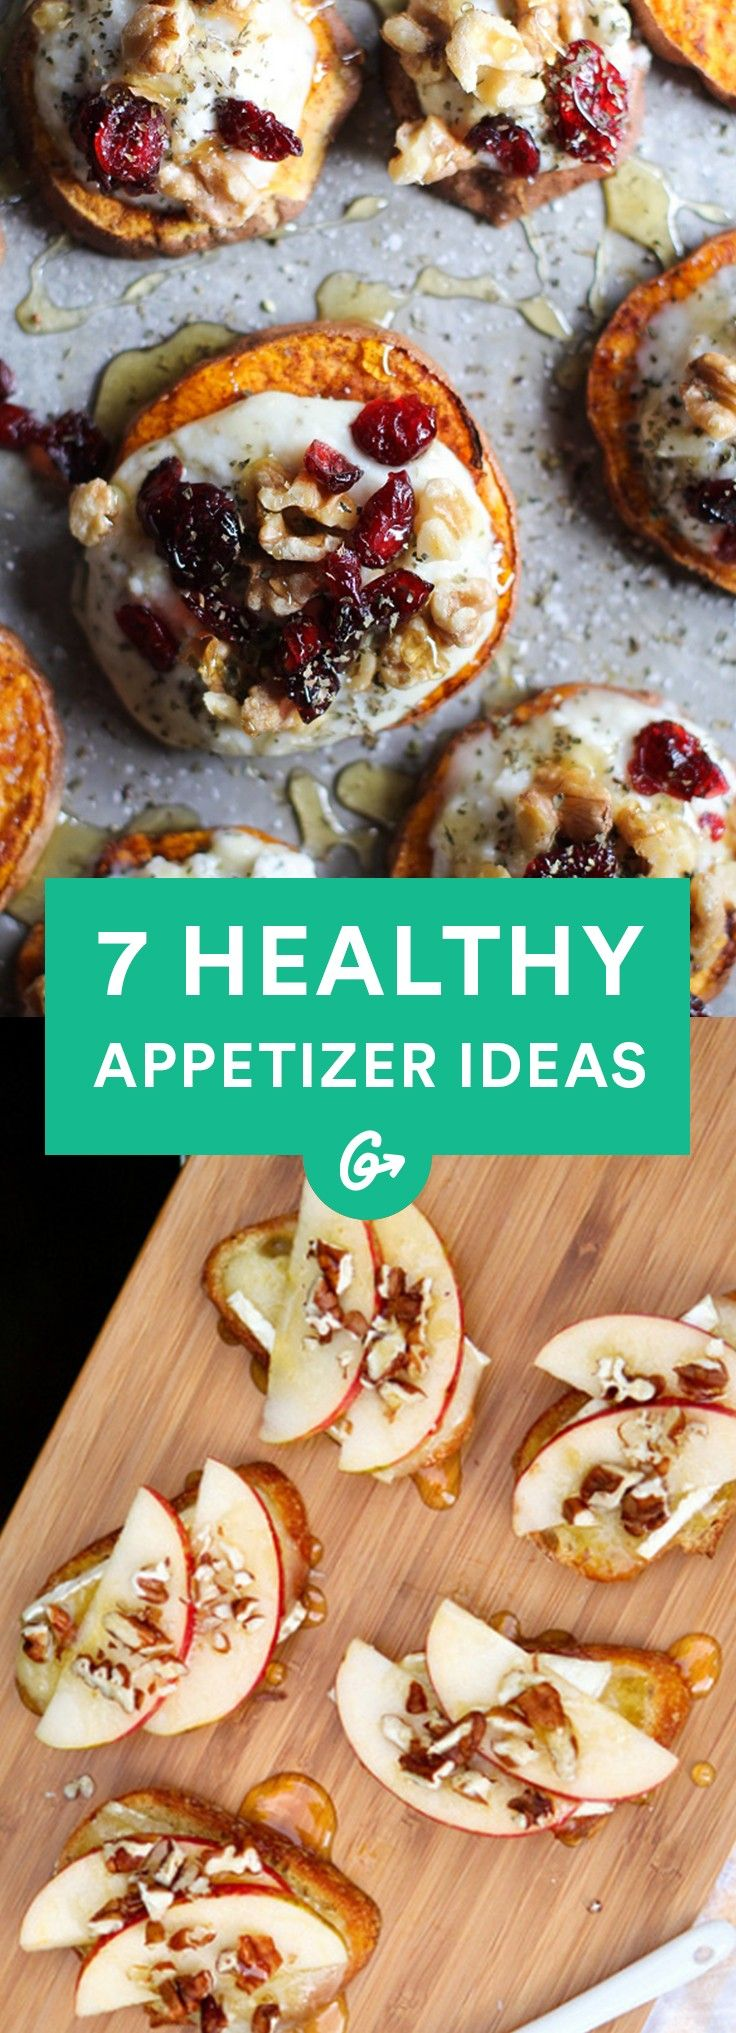 Healthy Christmas Appetizers Pinterest 7 Healthy Holiday Appetizer Ideas Thanksgiving And Christmas